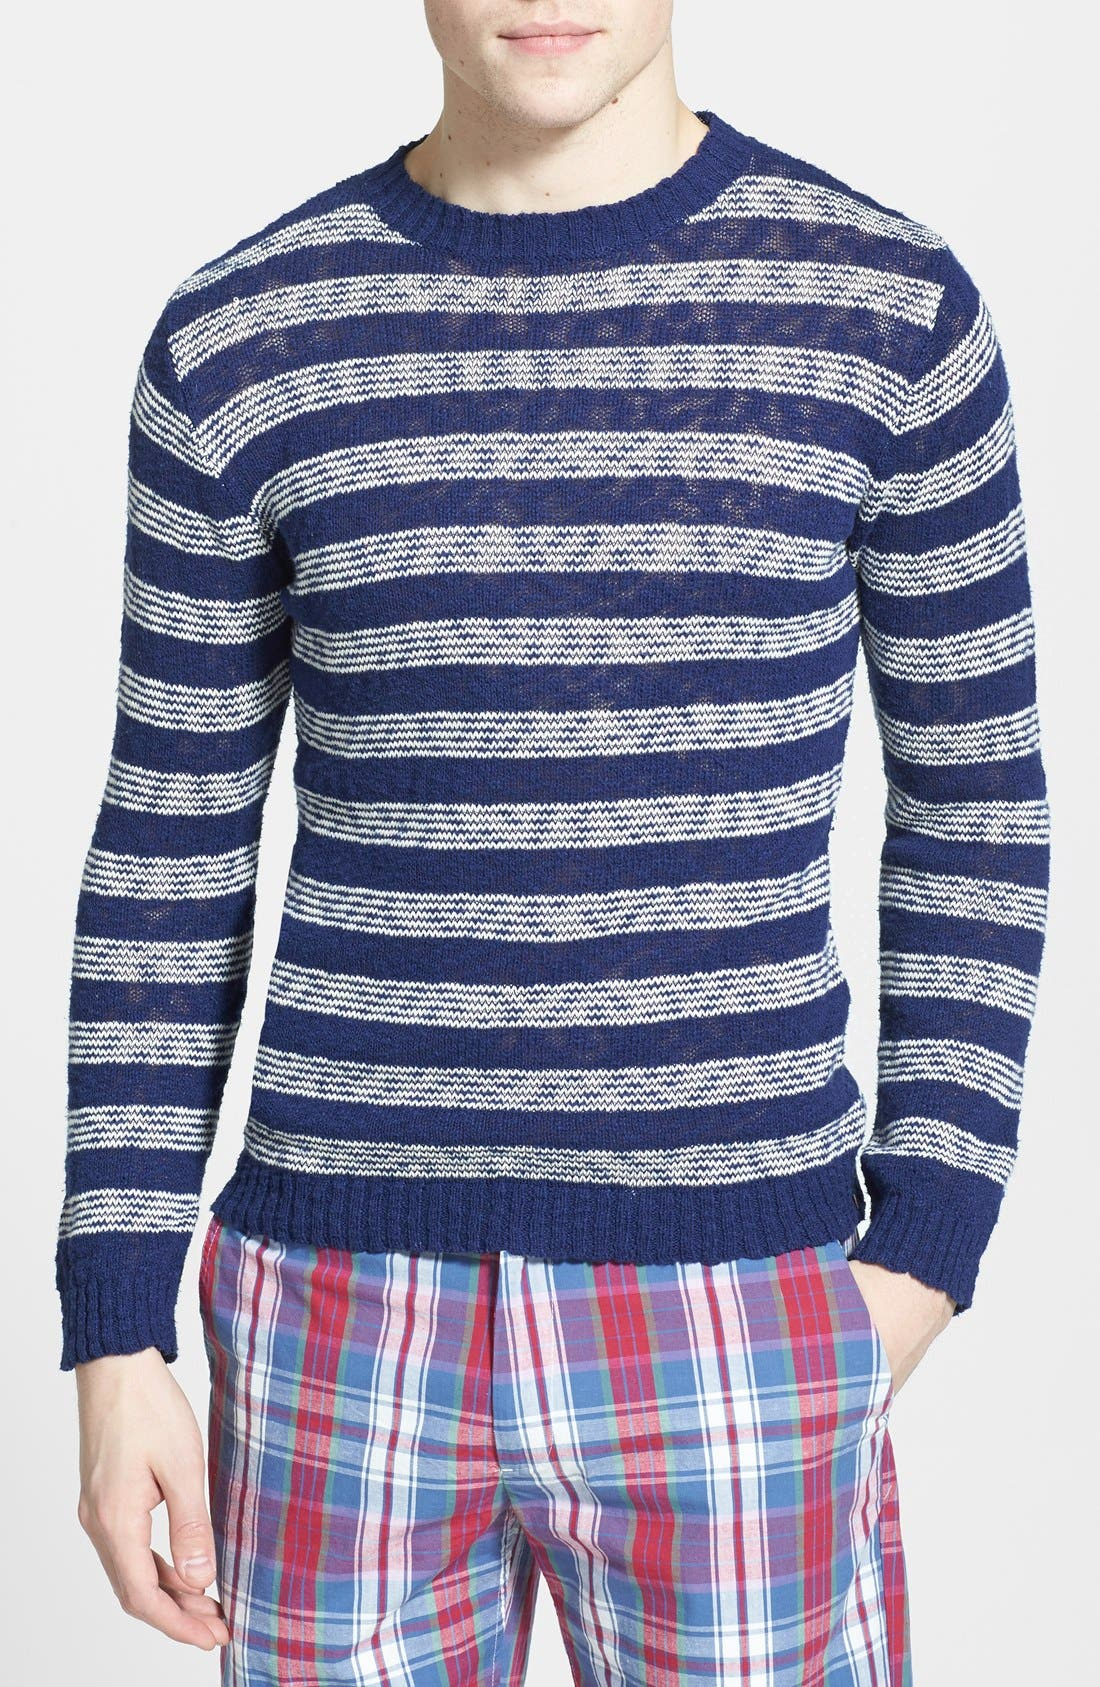 Main Image - Gant Rugger 'The Slubber' Sweater